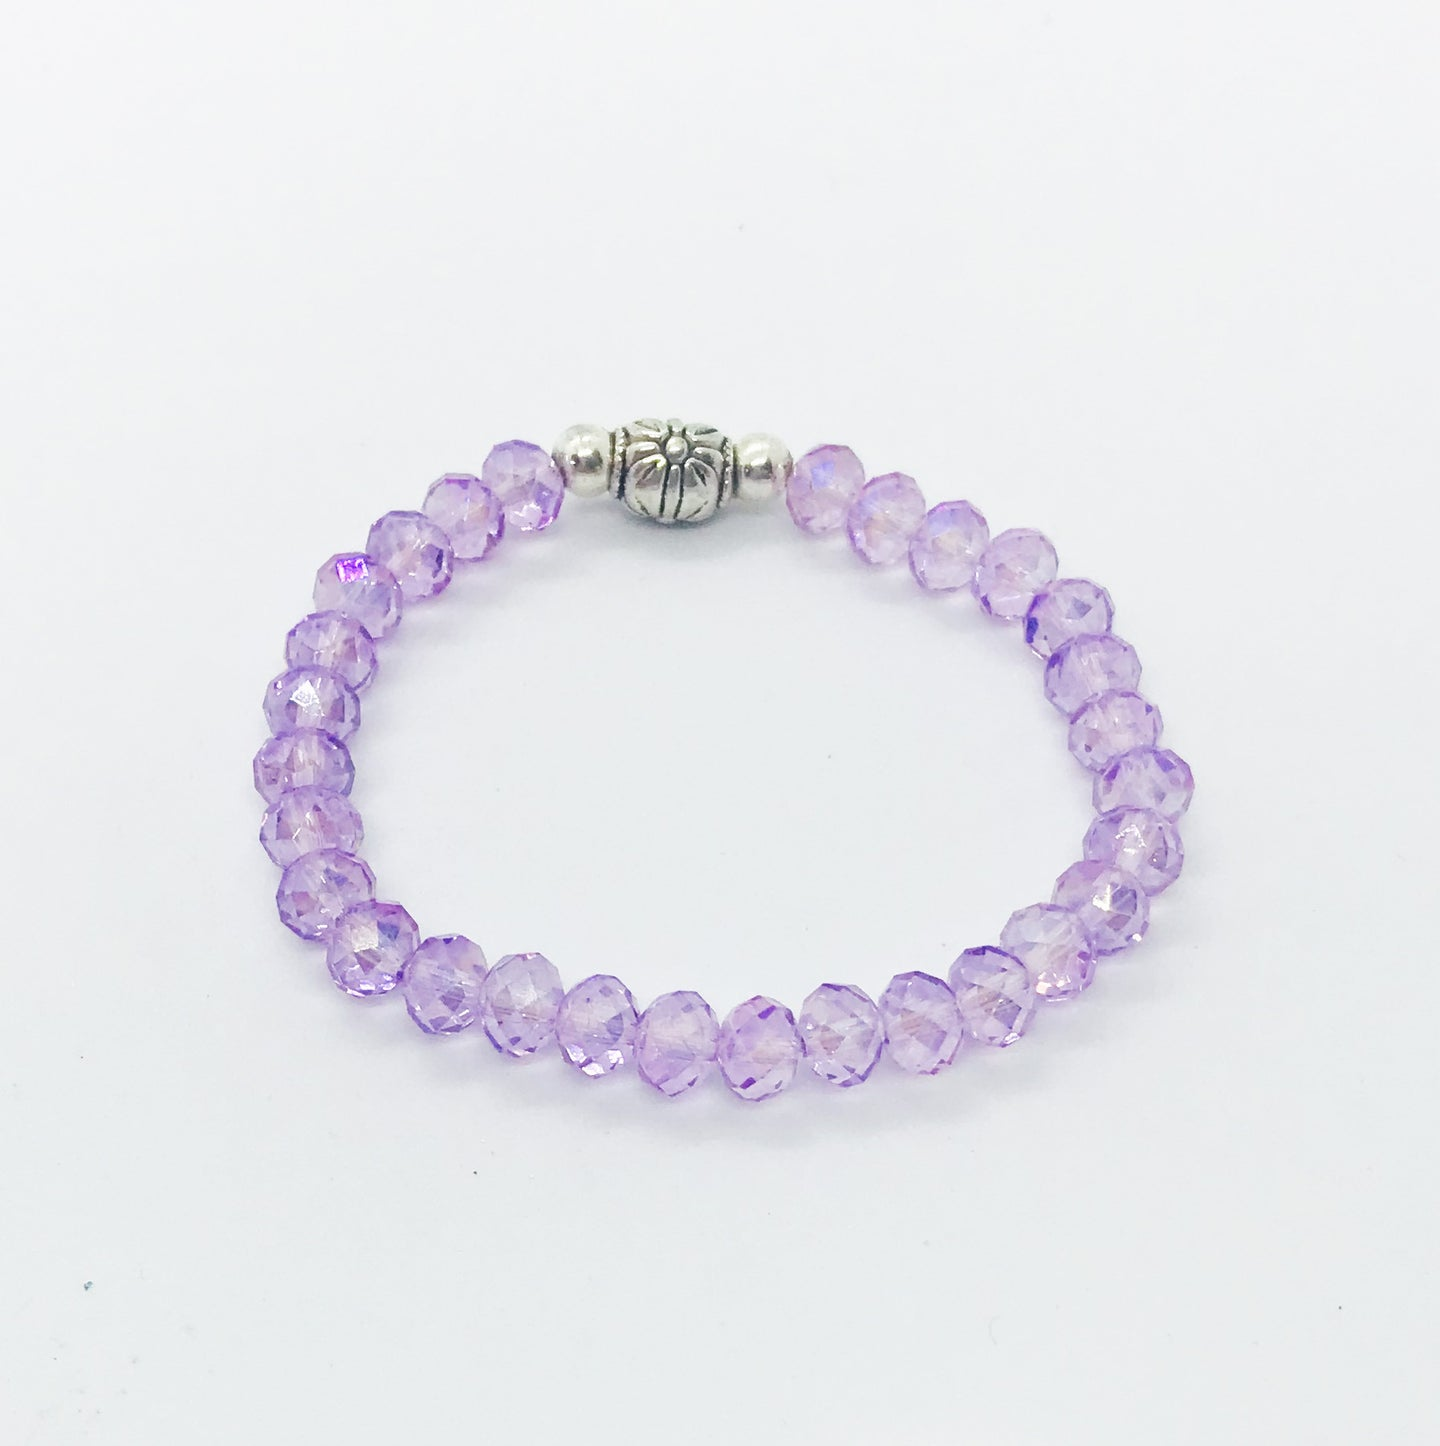 Glass Bead Stretchy Bracelet - B480